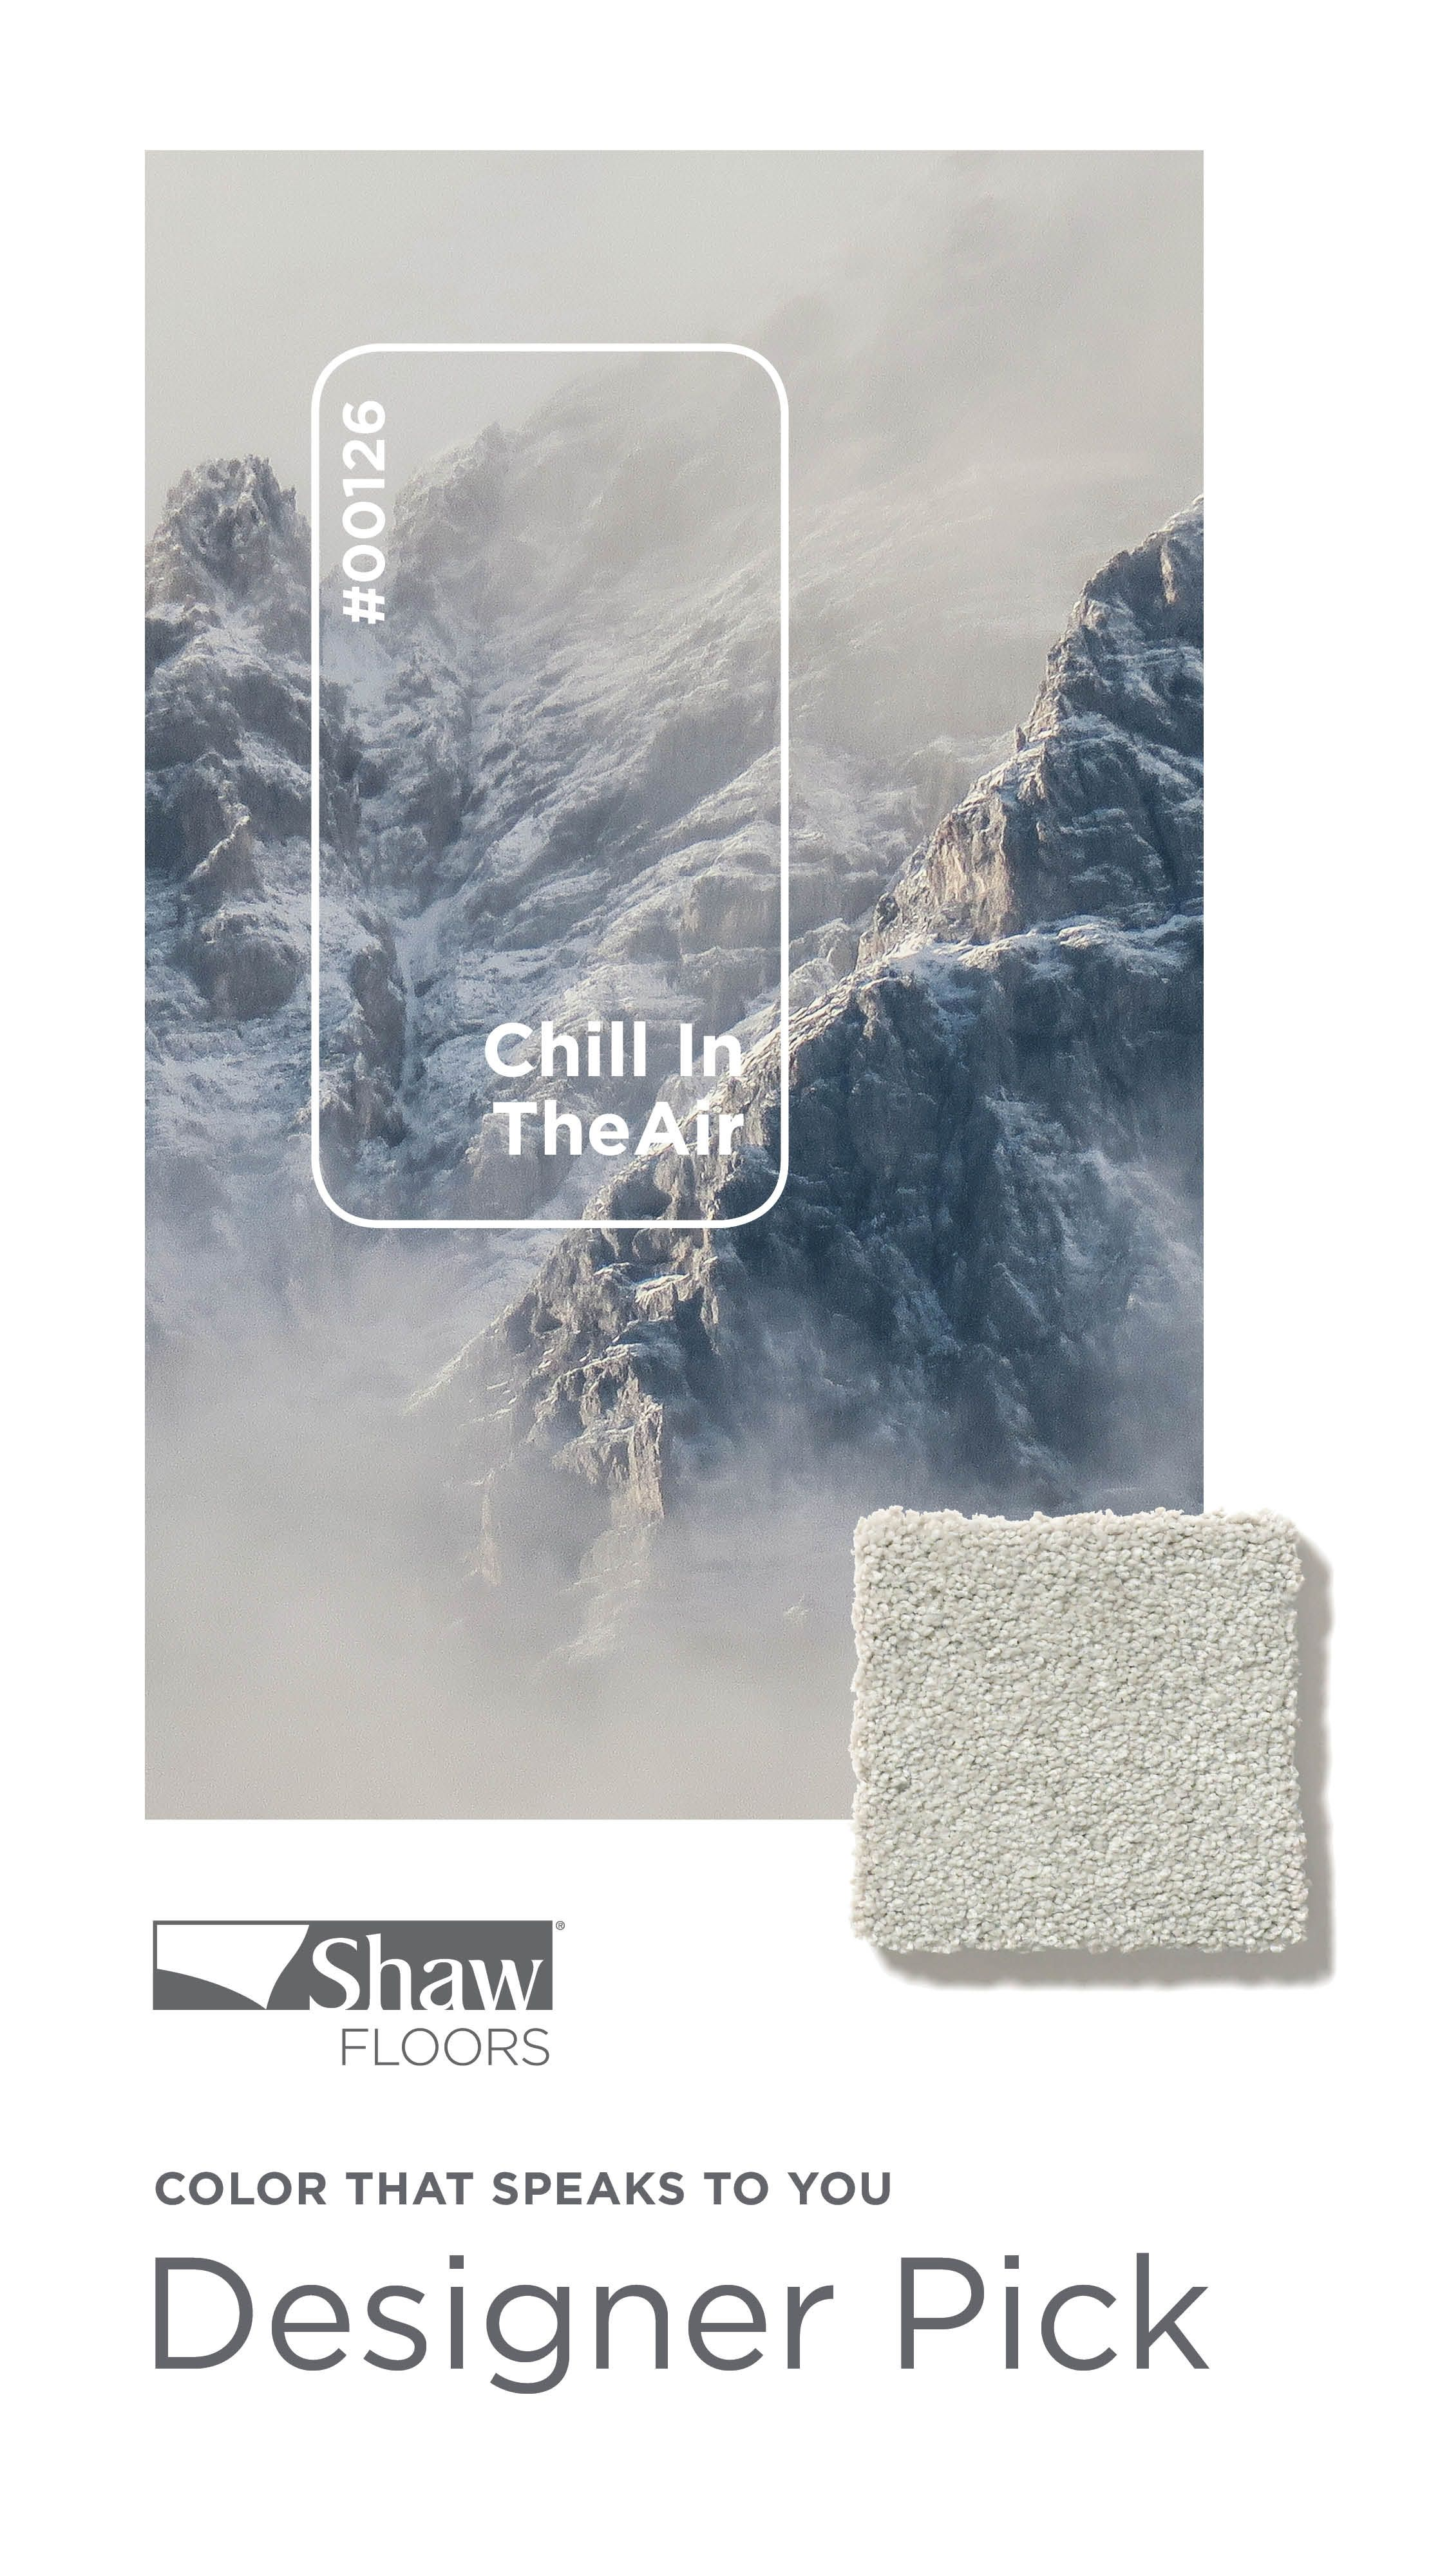 The First Cool Refreshing Breeze Signals The Changing Seasons Welcome Chill In The Air Carpet Into Your Home For A Peaceful Color Shaw Floors Designer Picks